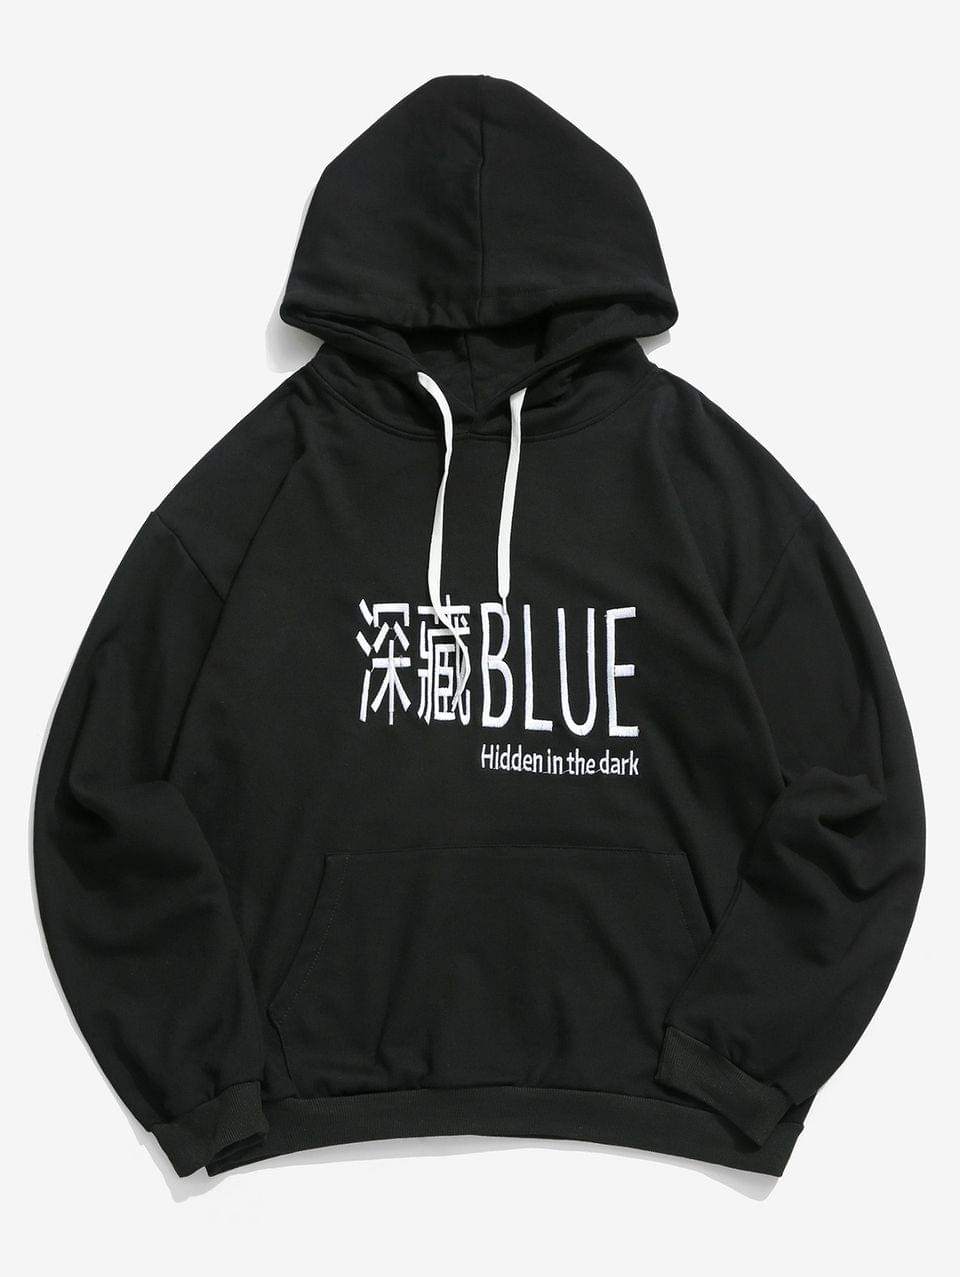 Men's Blue Hidden In The Dark Embroidery Kangaroo Pocket Hoodie - Black Xl